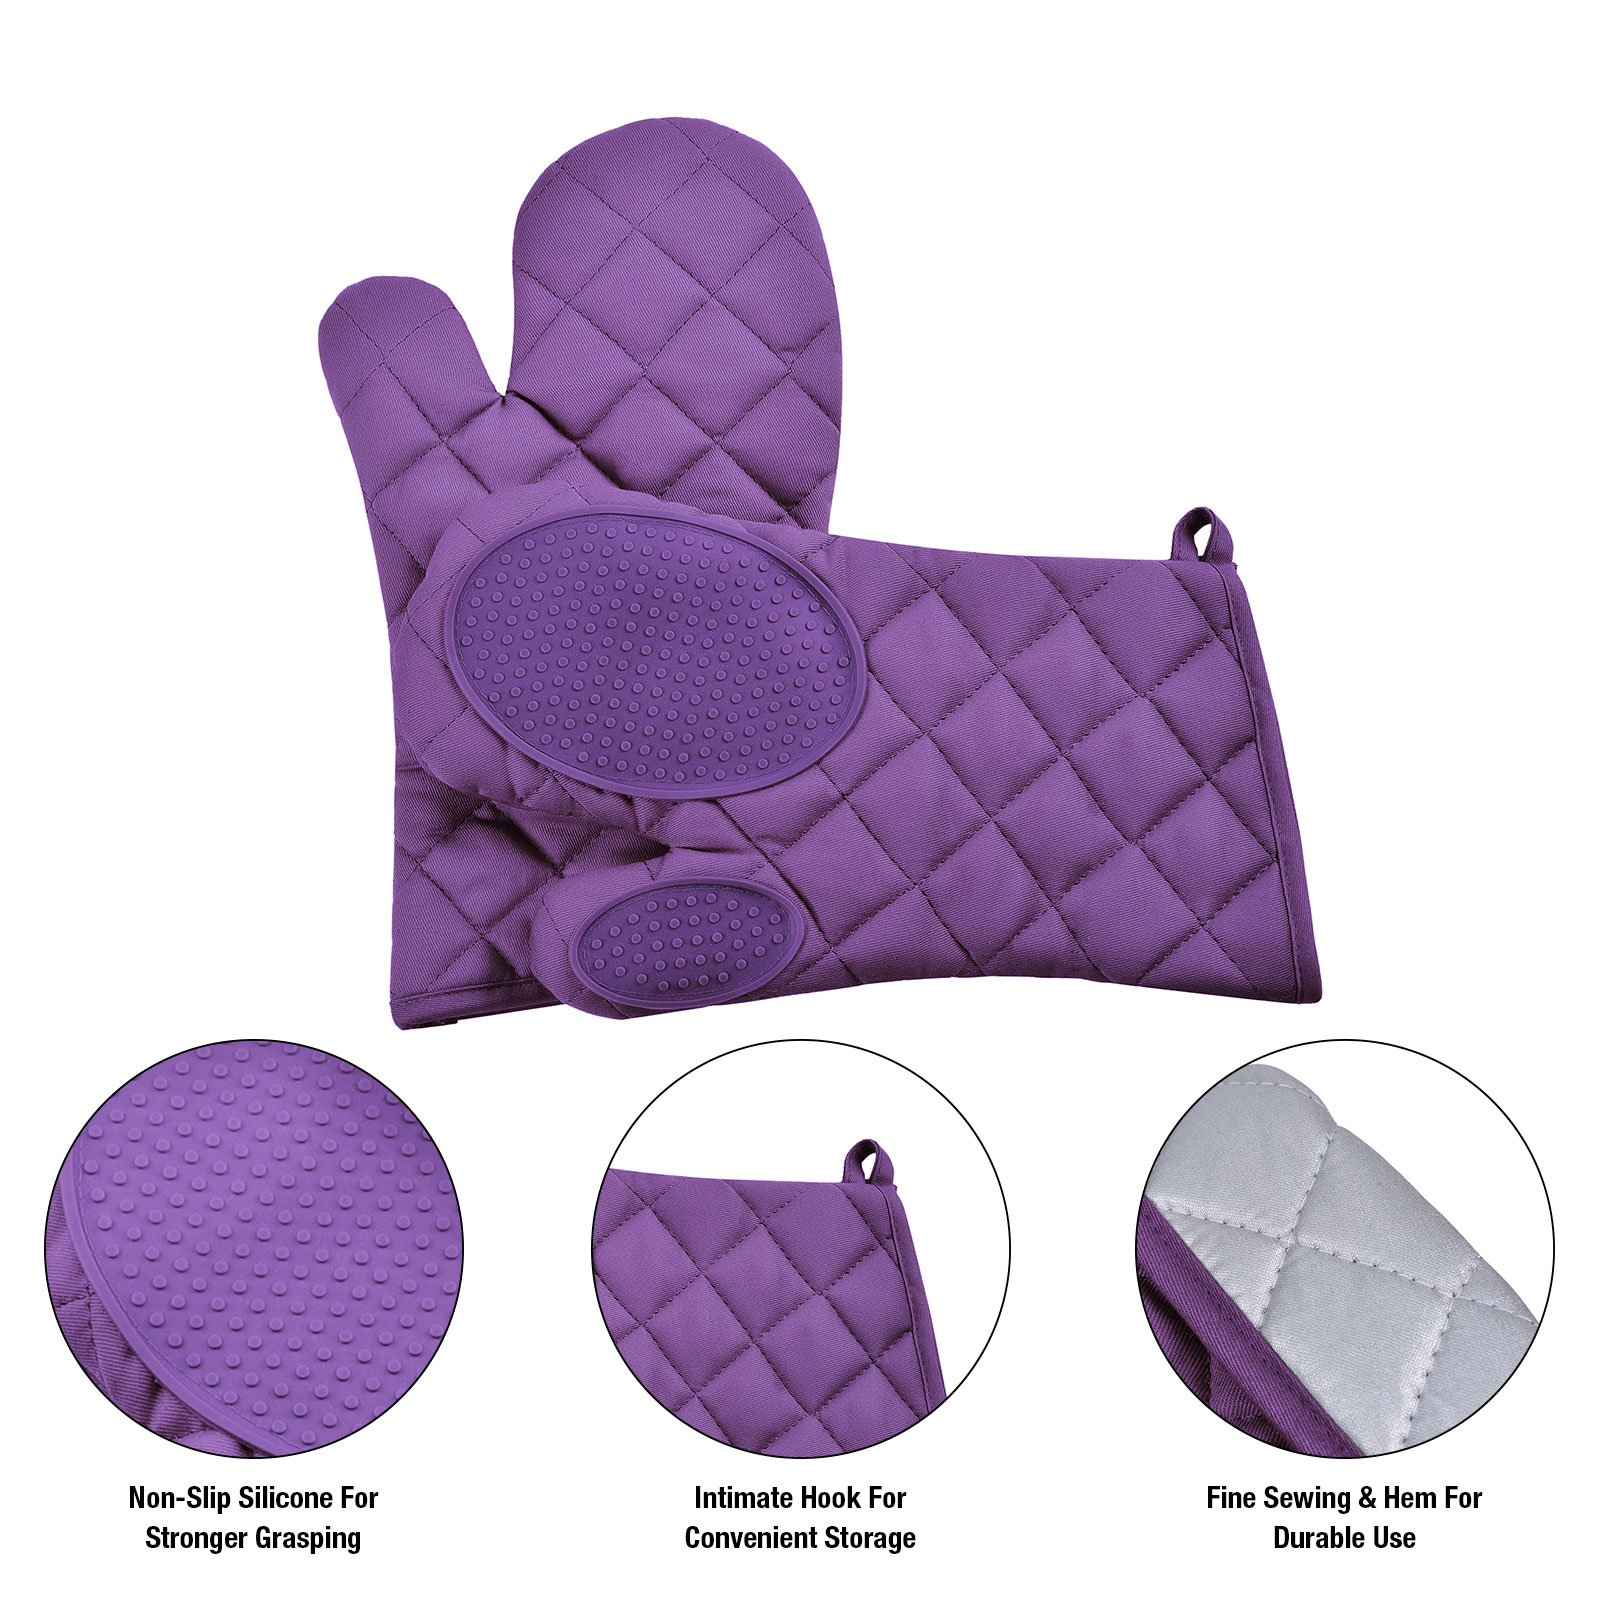 VEEYOO Cotton Oven Mitts Pot Holders Set - Kitchen Silicone Oven Mitt Heat Resistant, Non-slip Grip Oven Gloves Potholder 3 Packs Cooking, Baking & BBQ, Purple by VEEYOO (Image #3)